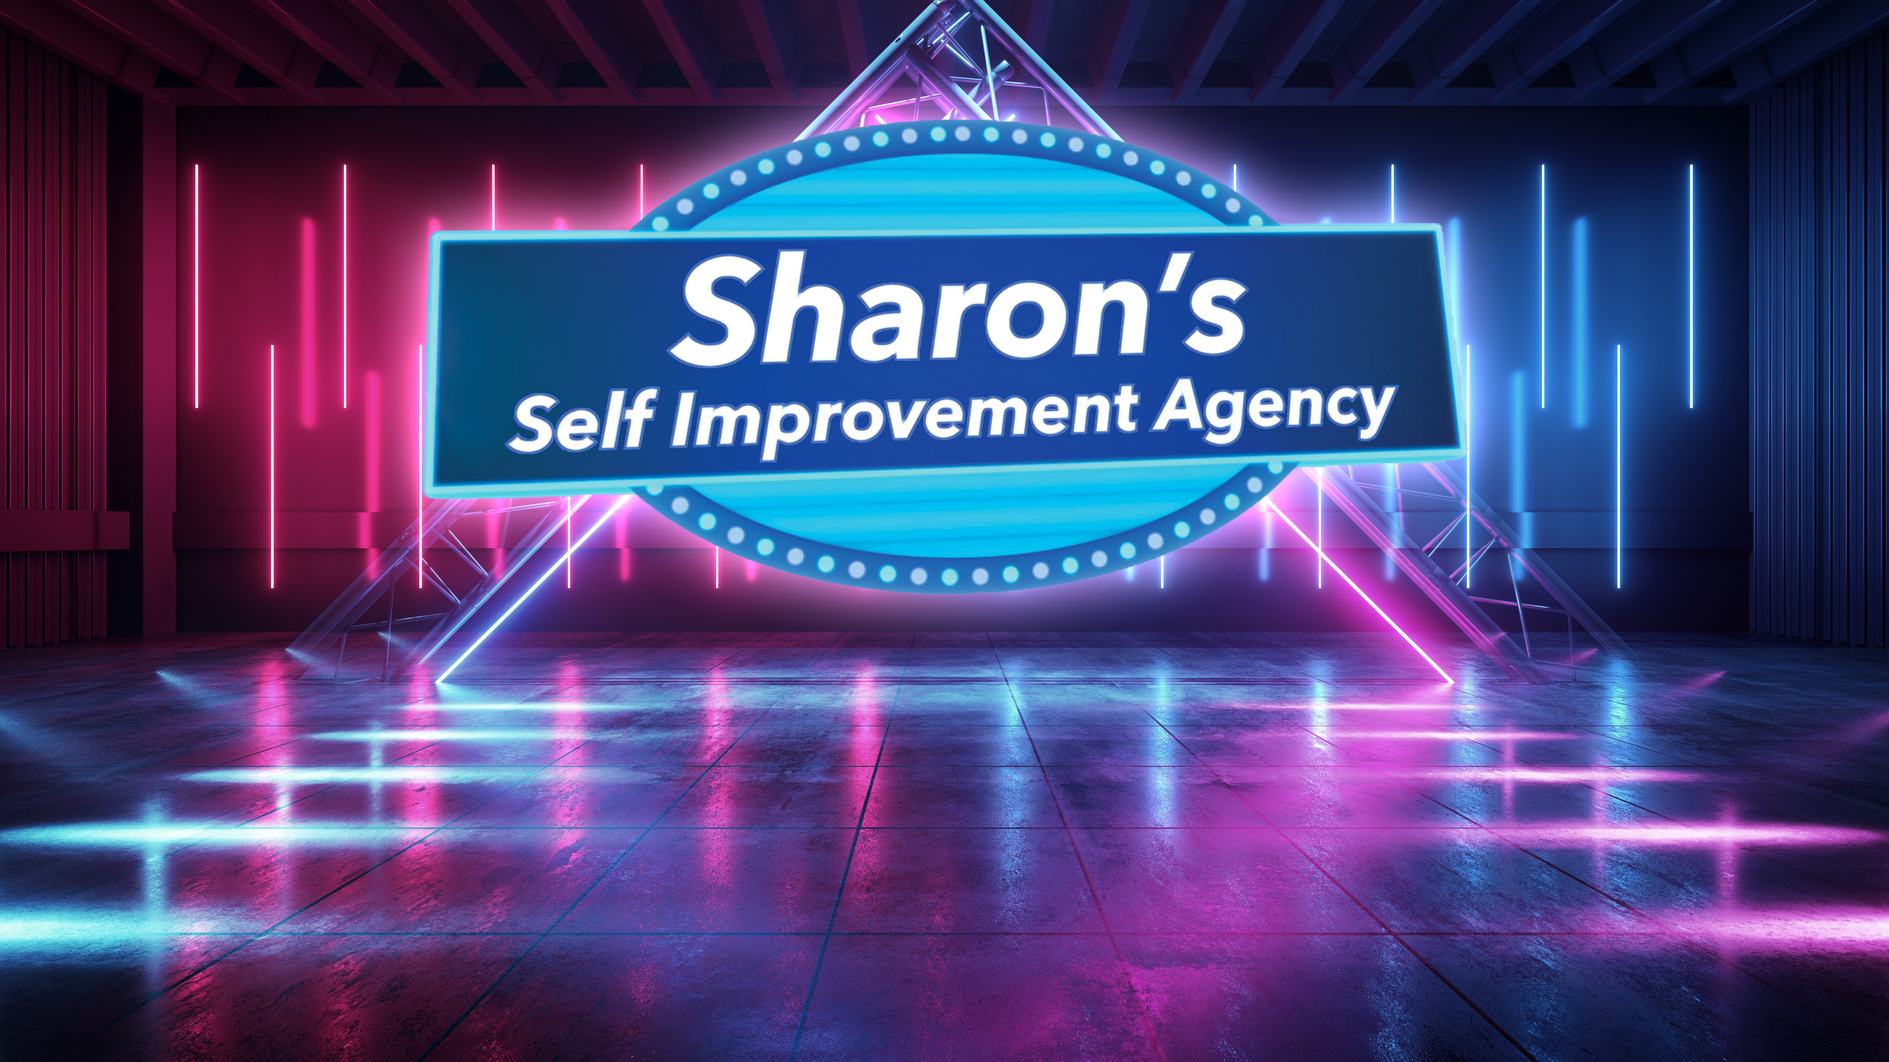 Sharon's Self Improvement Film Image